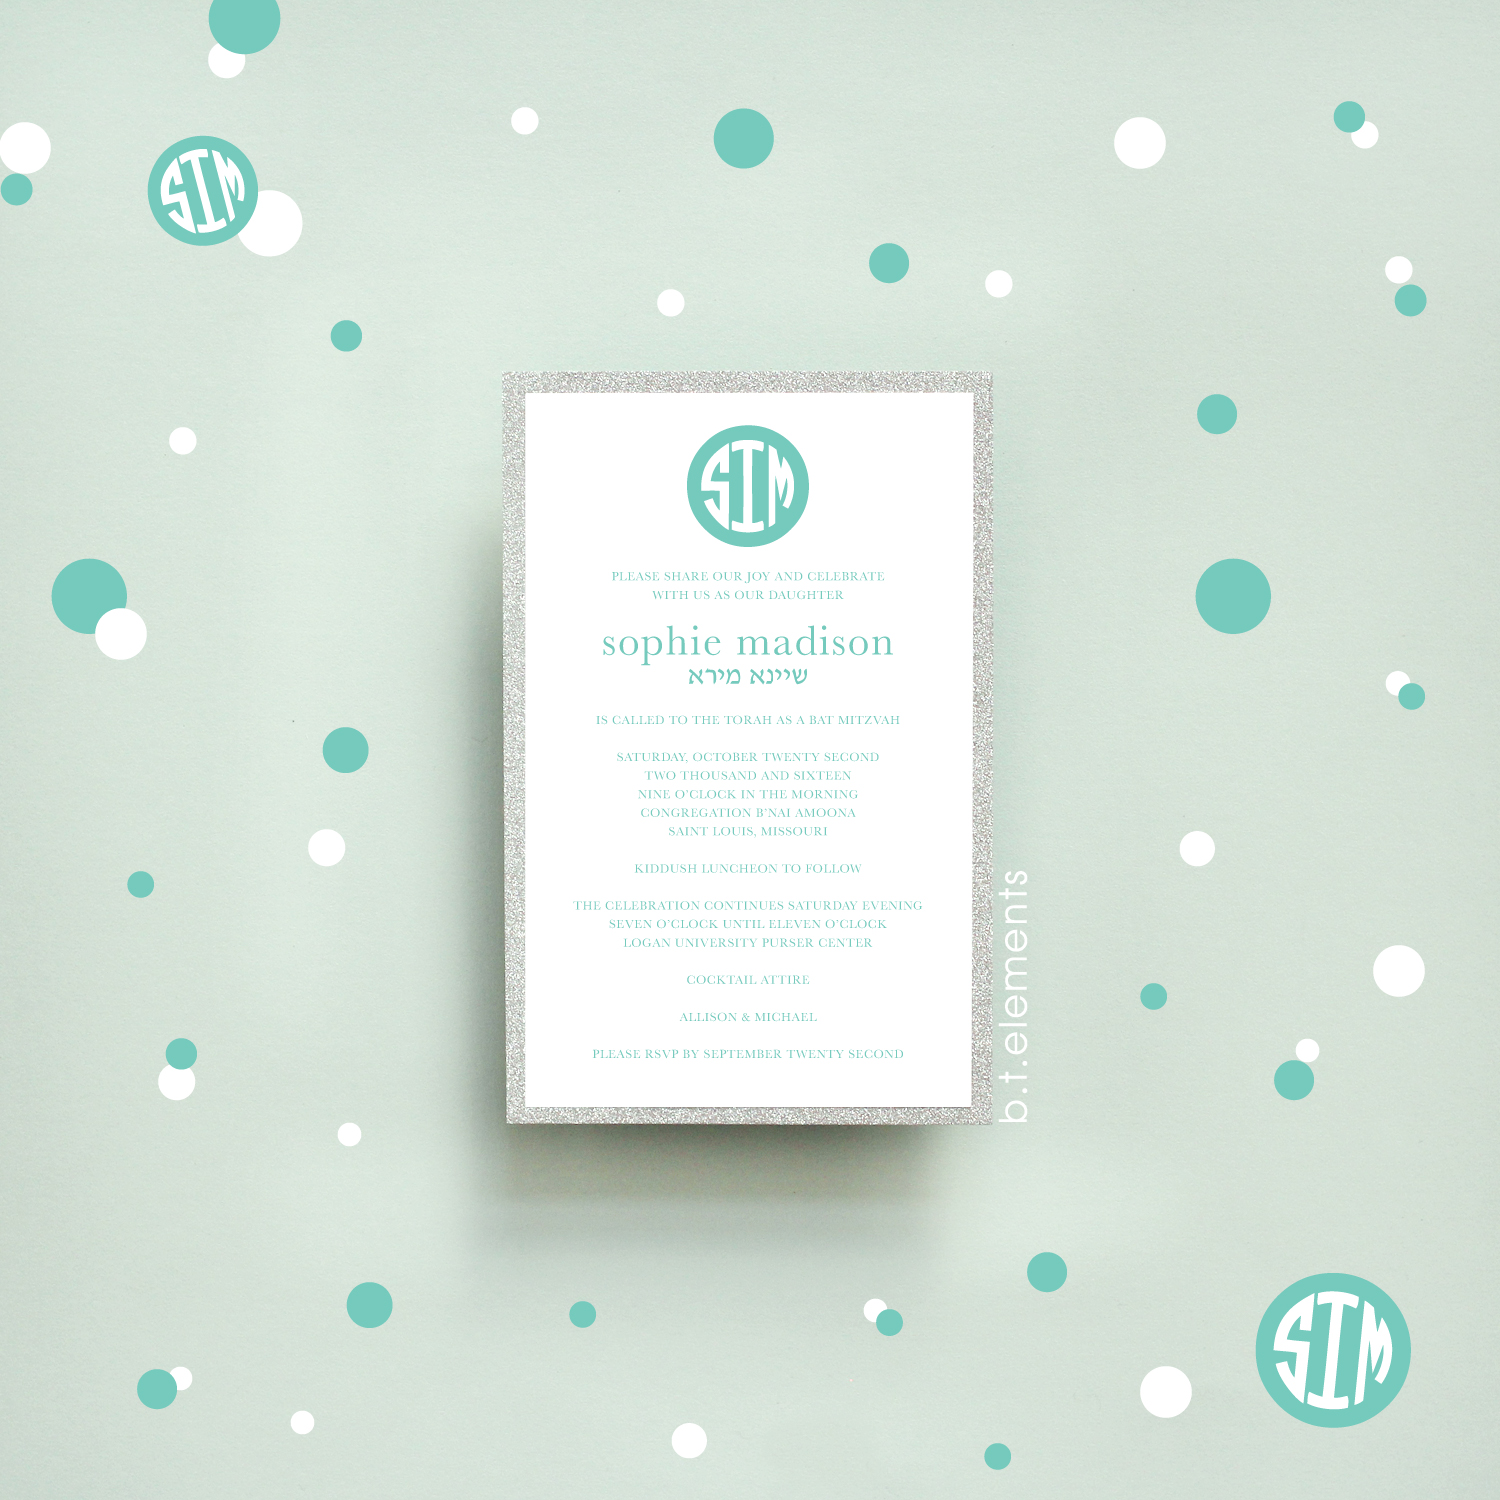 Sophie's Bat Mitzvah Invitation, 2016   Store: Stationery Designs in St. Louis, MO